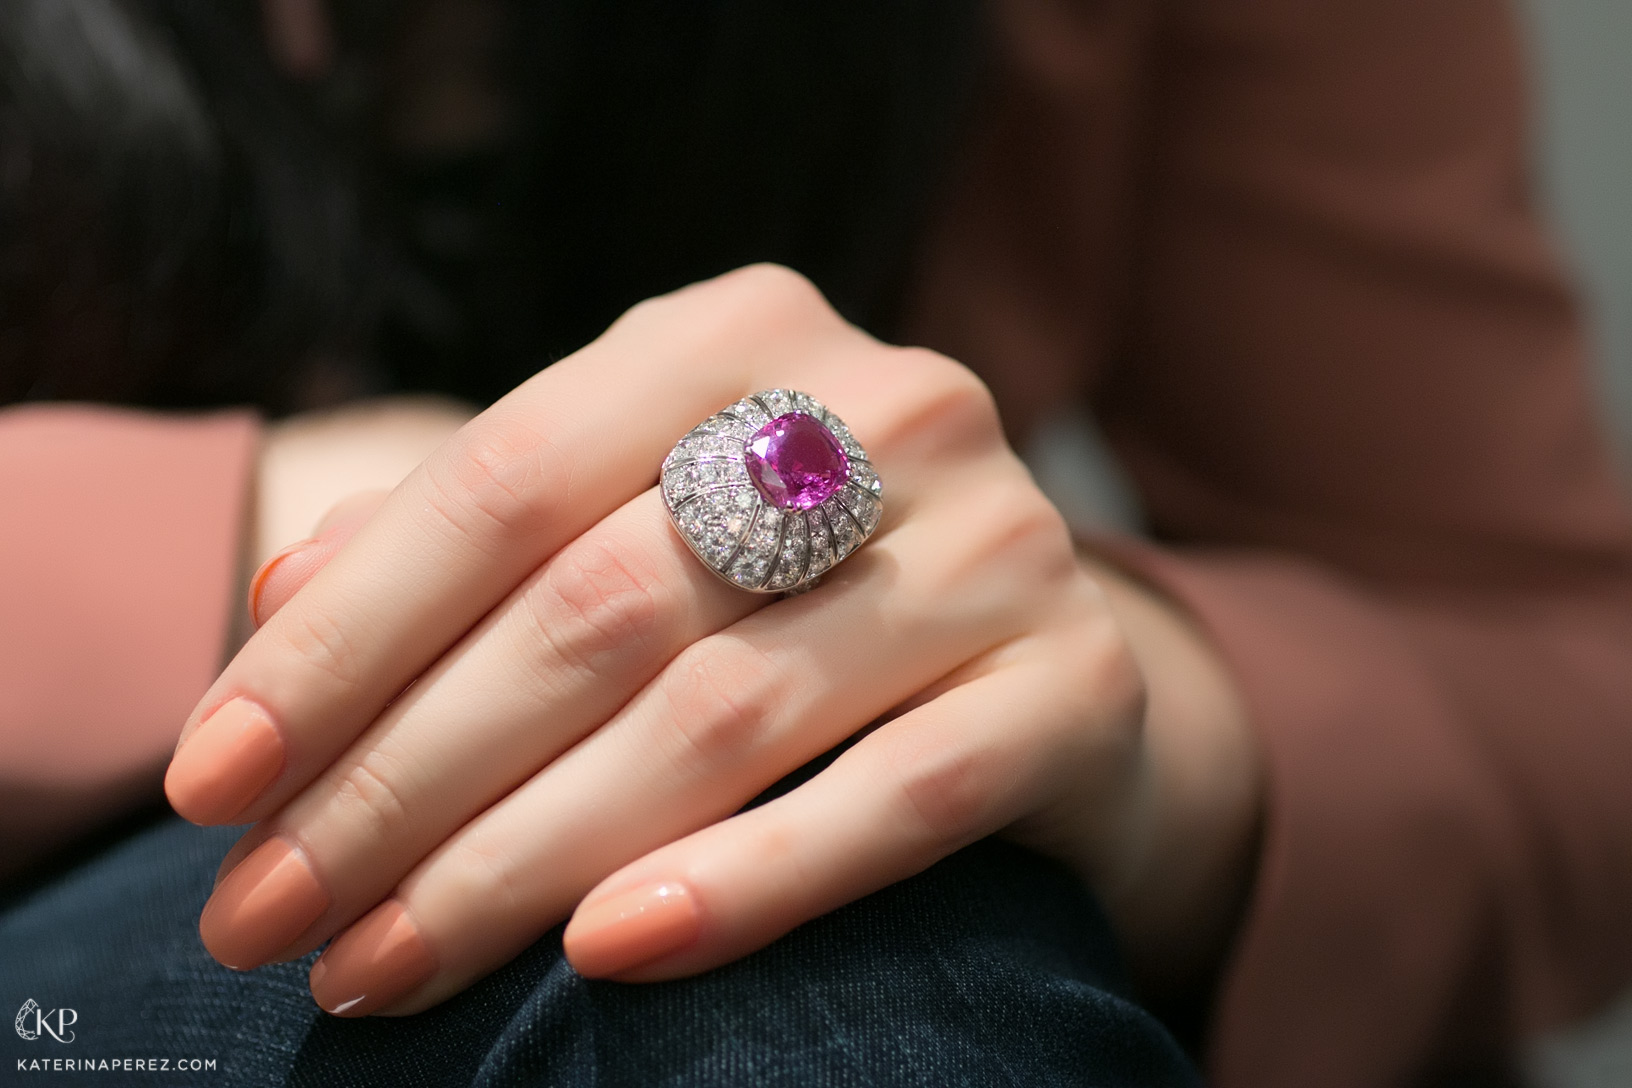 Picchiotti ring with pink 6.46ct rubellite and diamonds